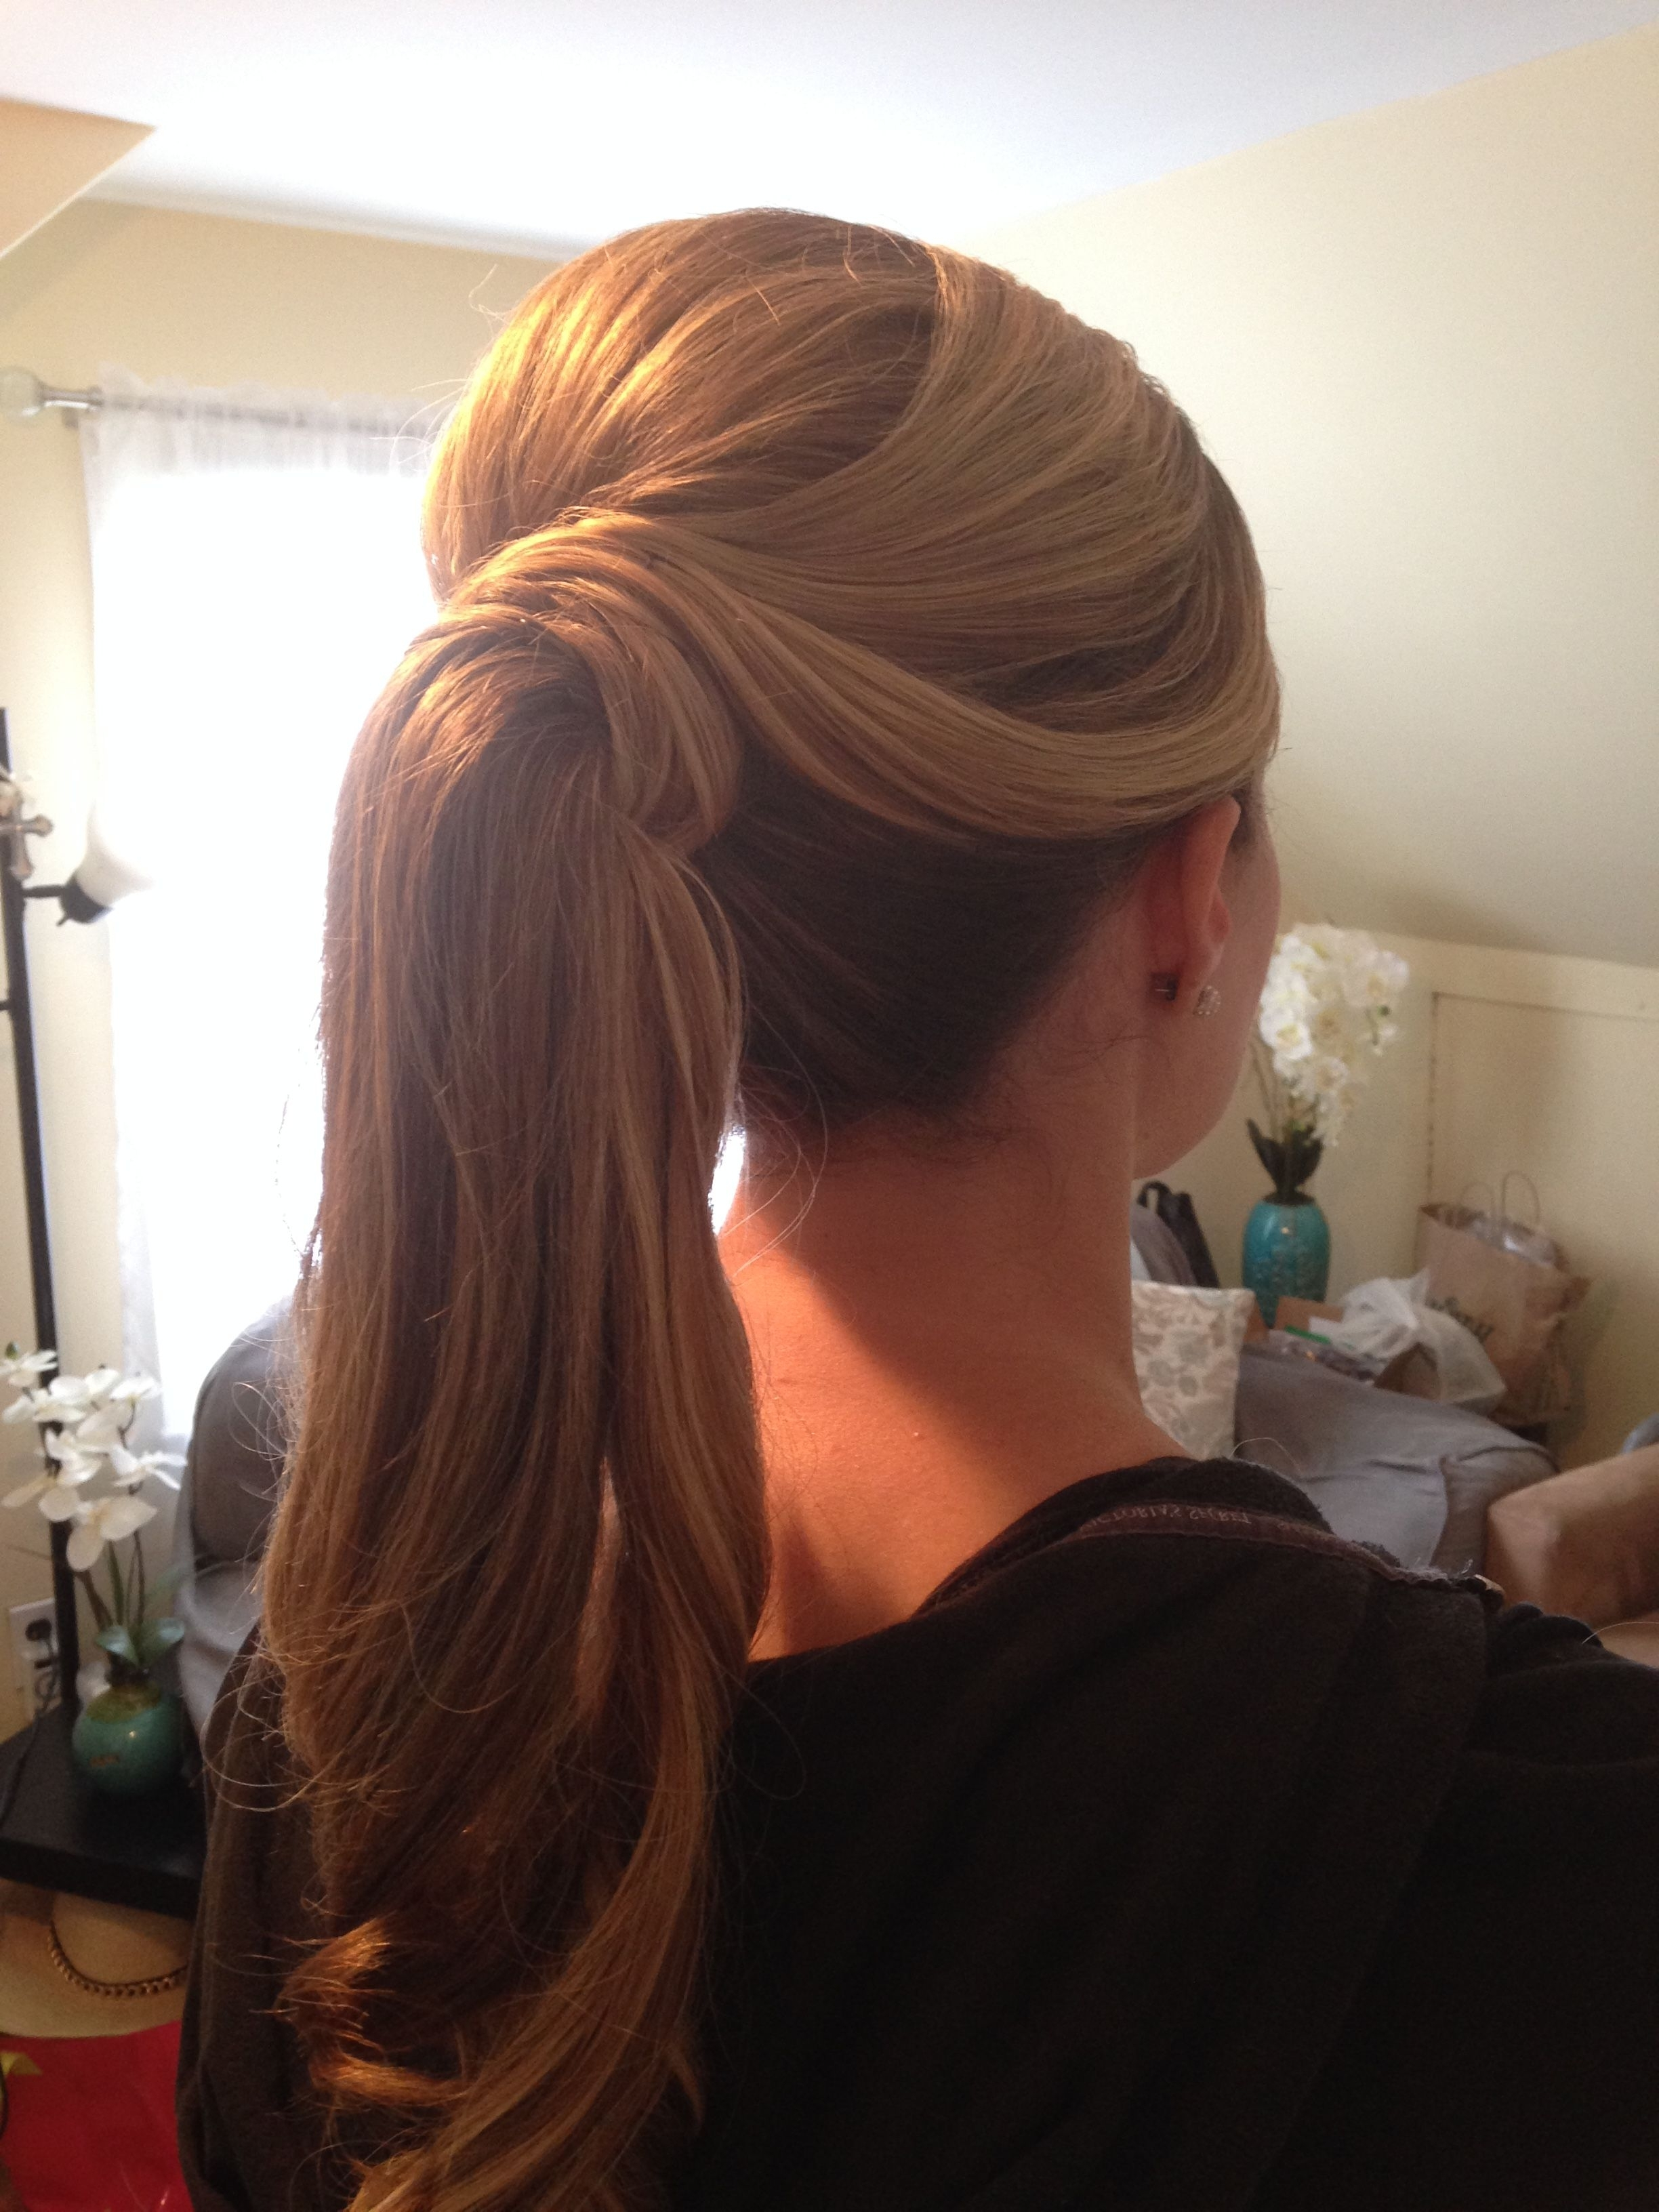 Fancy Ponytail Hairstyles Aka The Barbie Ponytail (View 6 of 20)